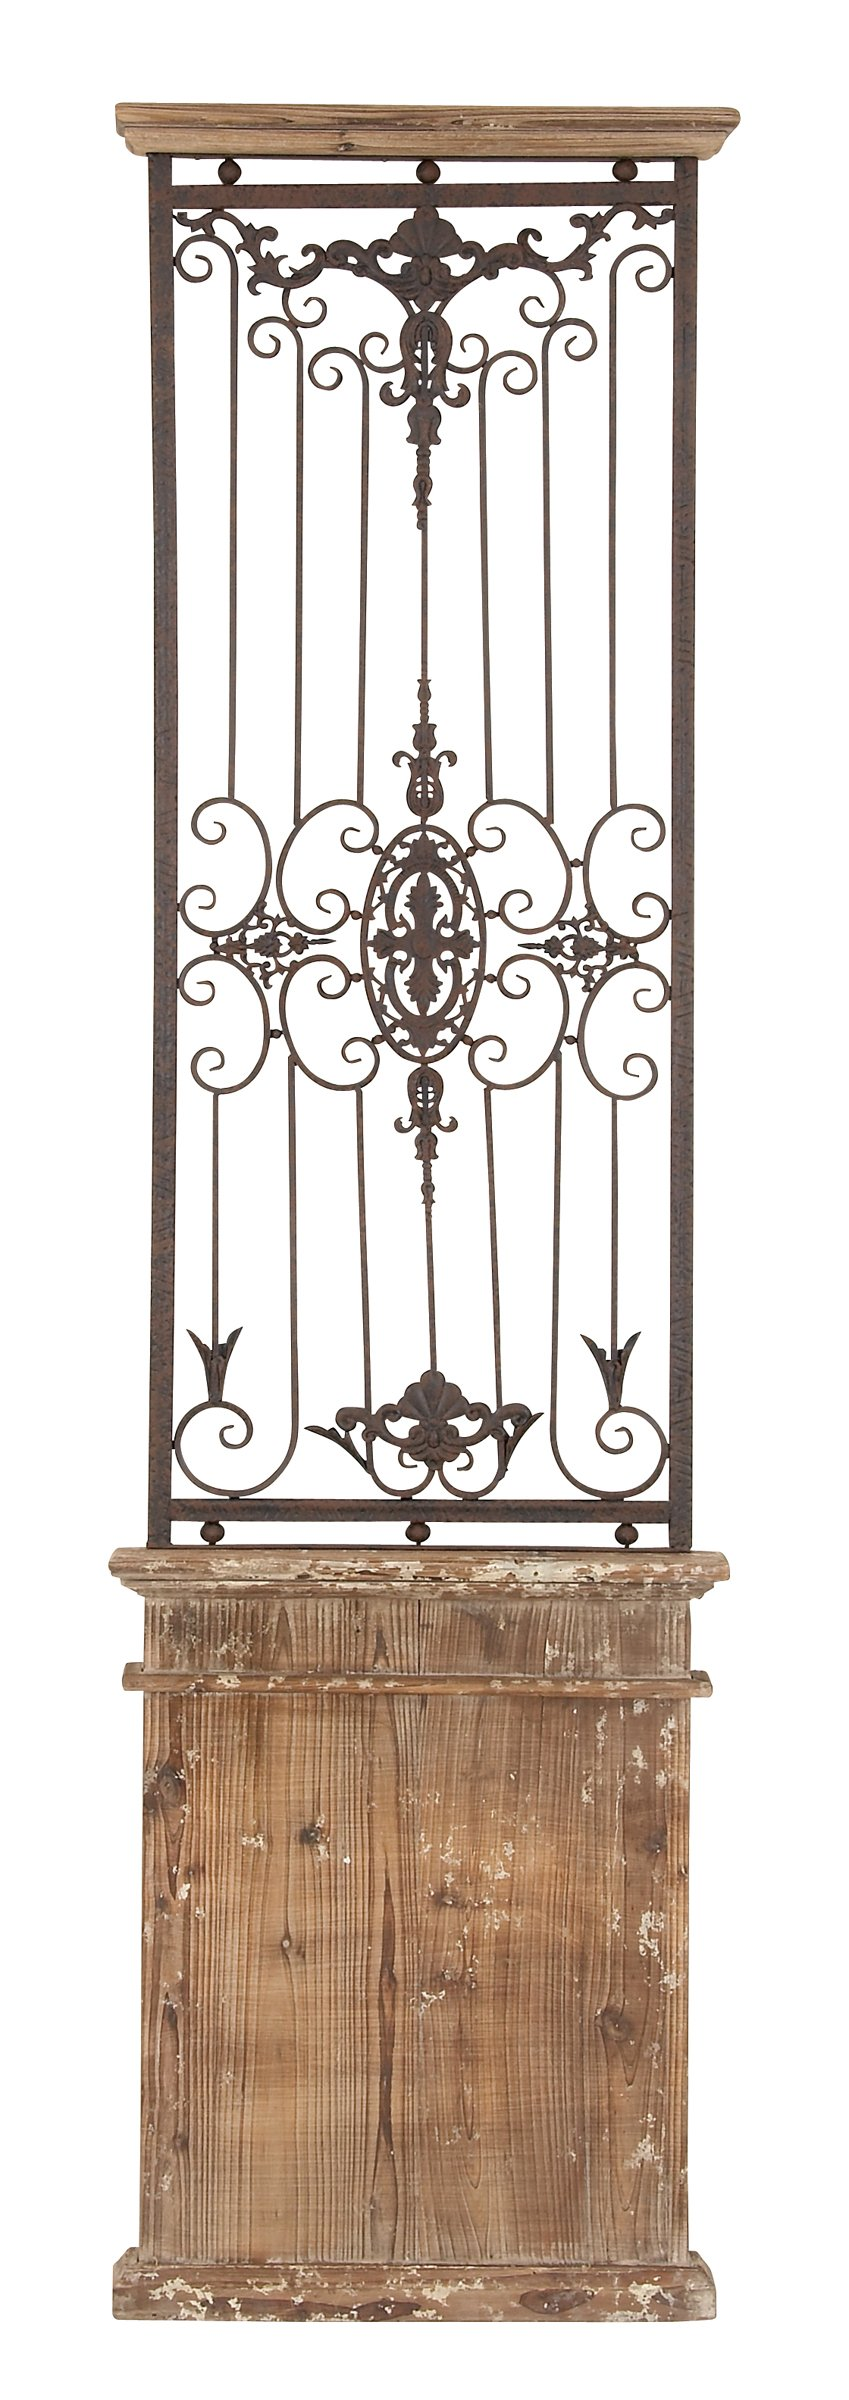 Deco 79 80944 Metal Wood Wall Gate Makes You Fall in Instant Love